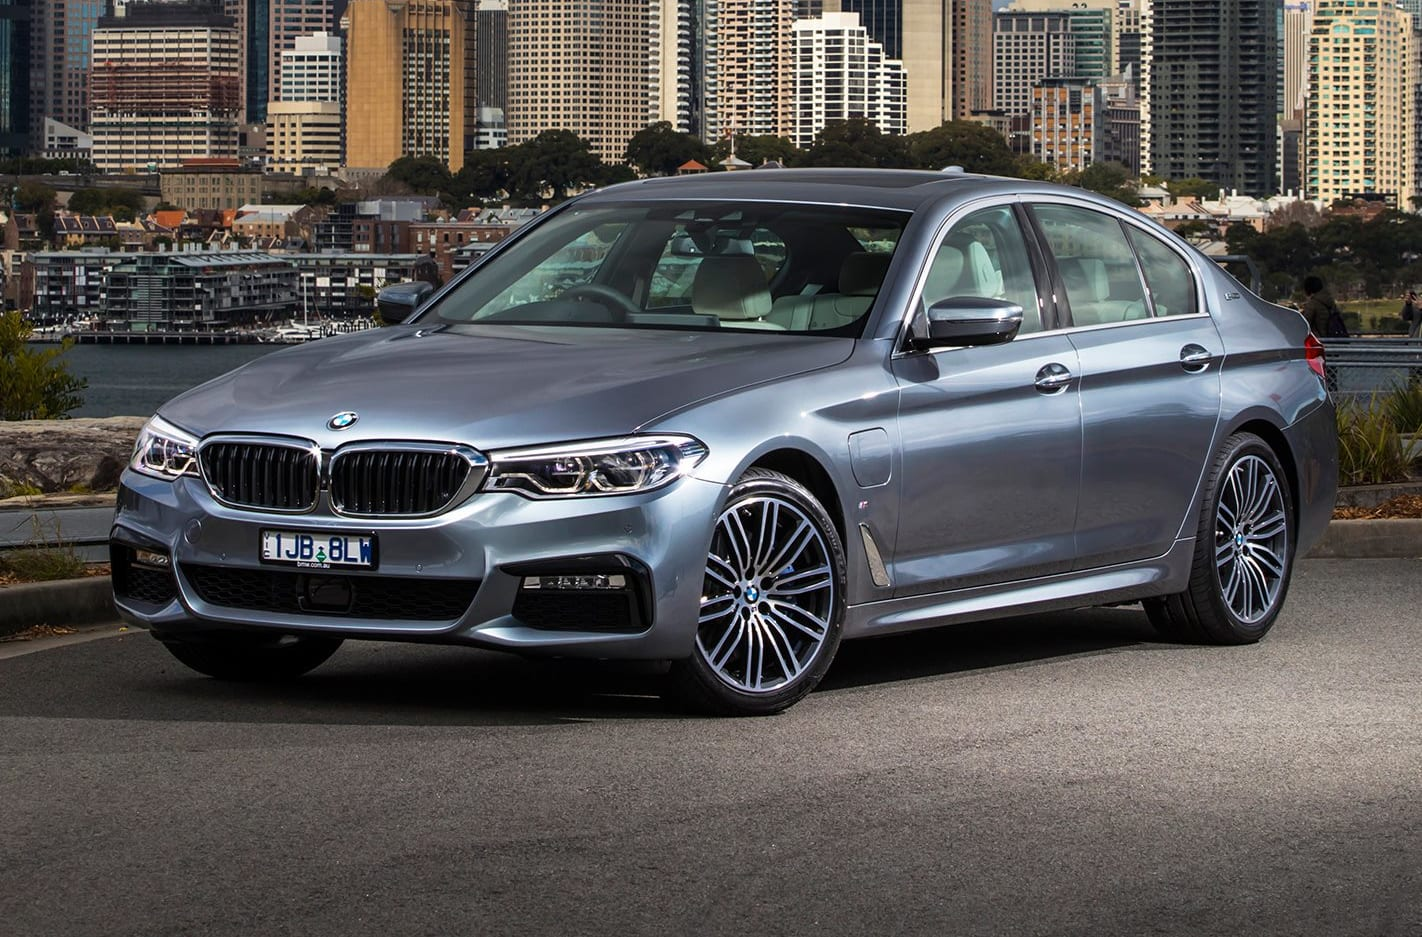 2017 BMW 530e iPerformance Quick Review